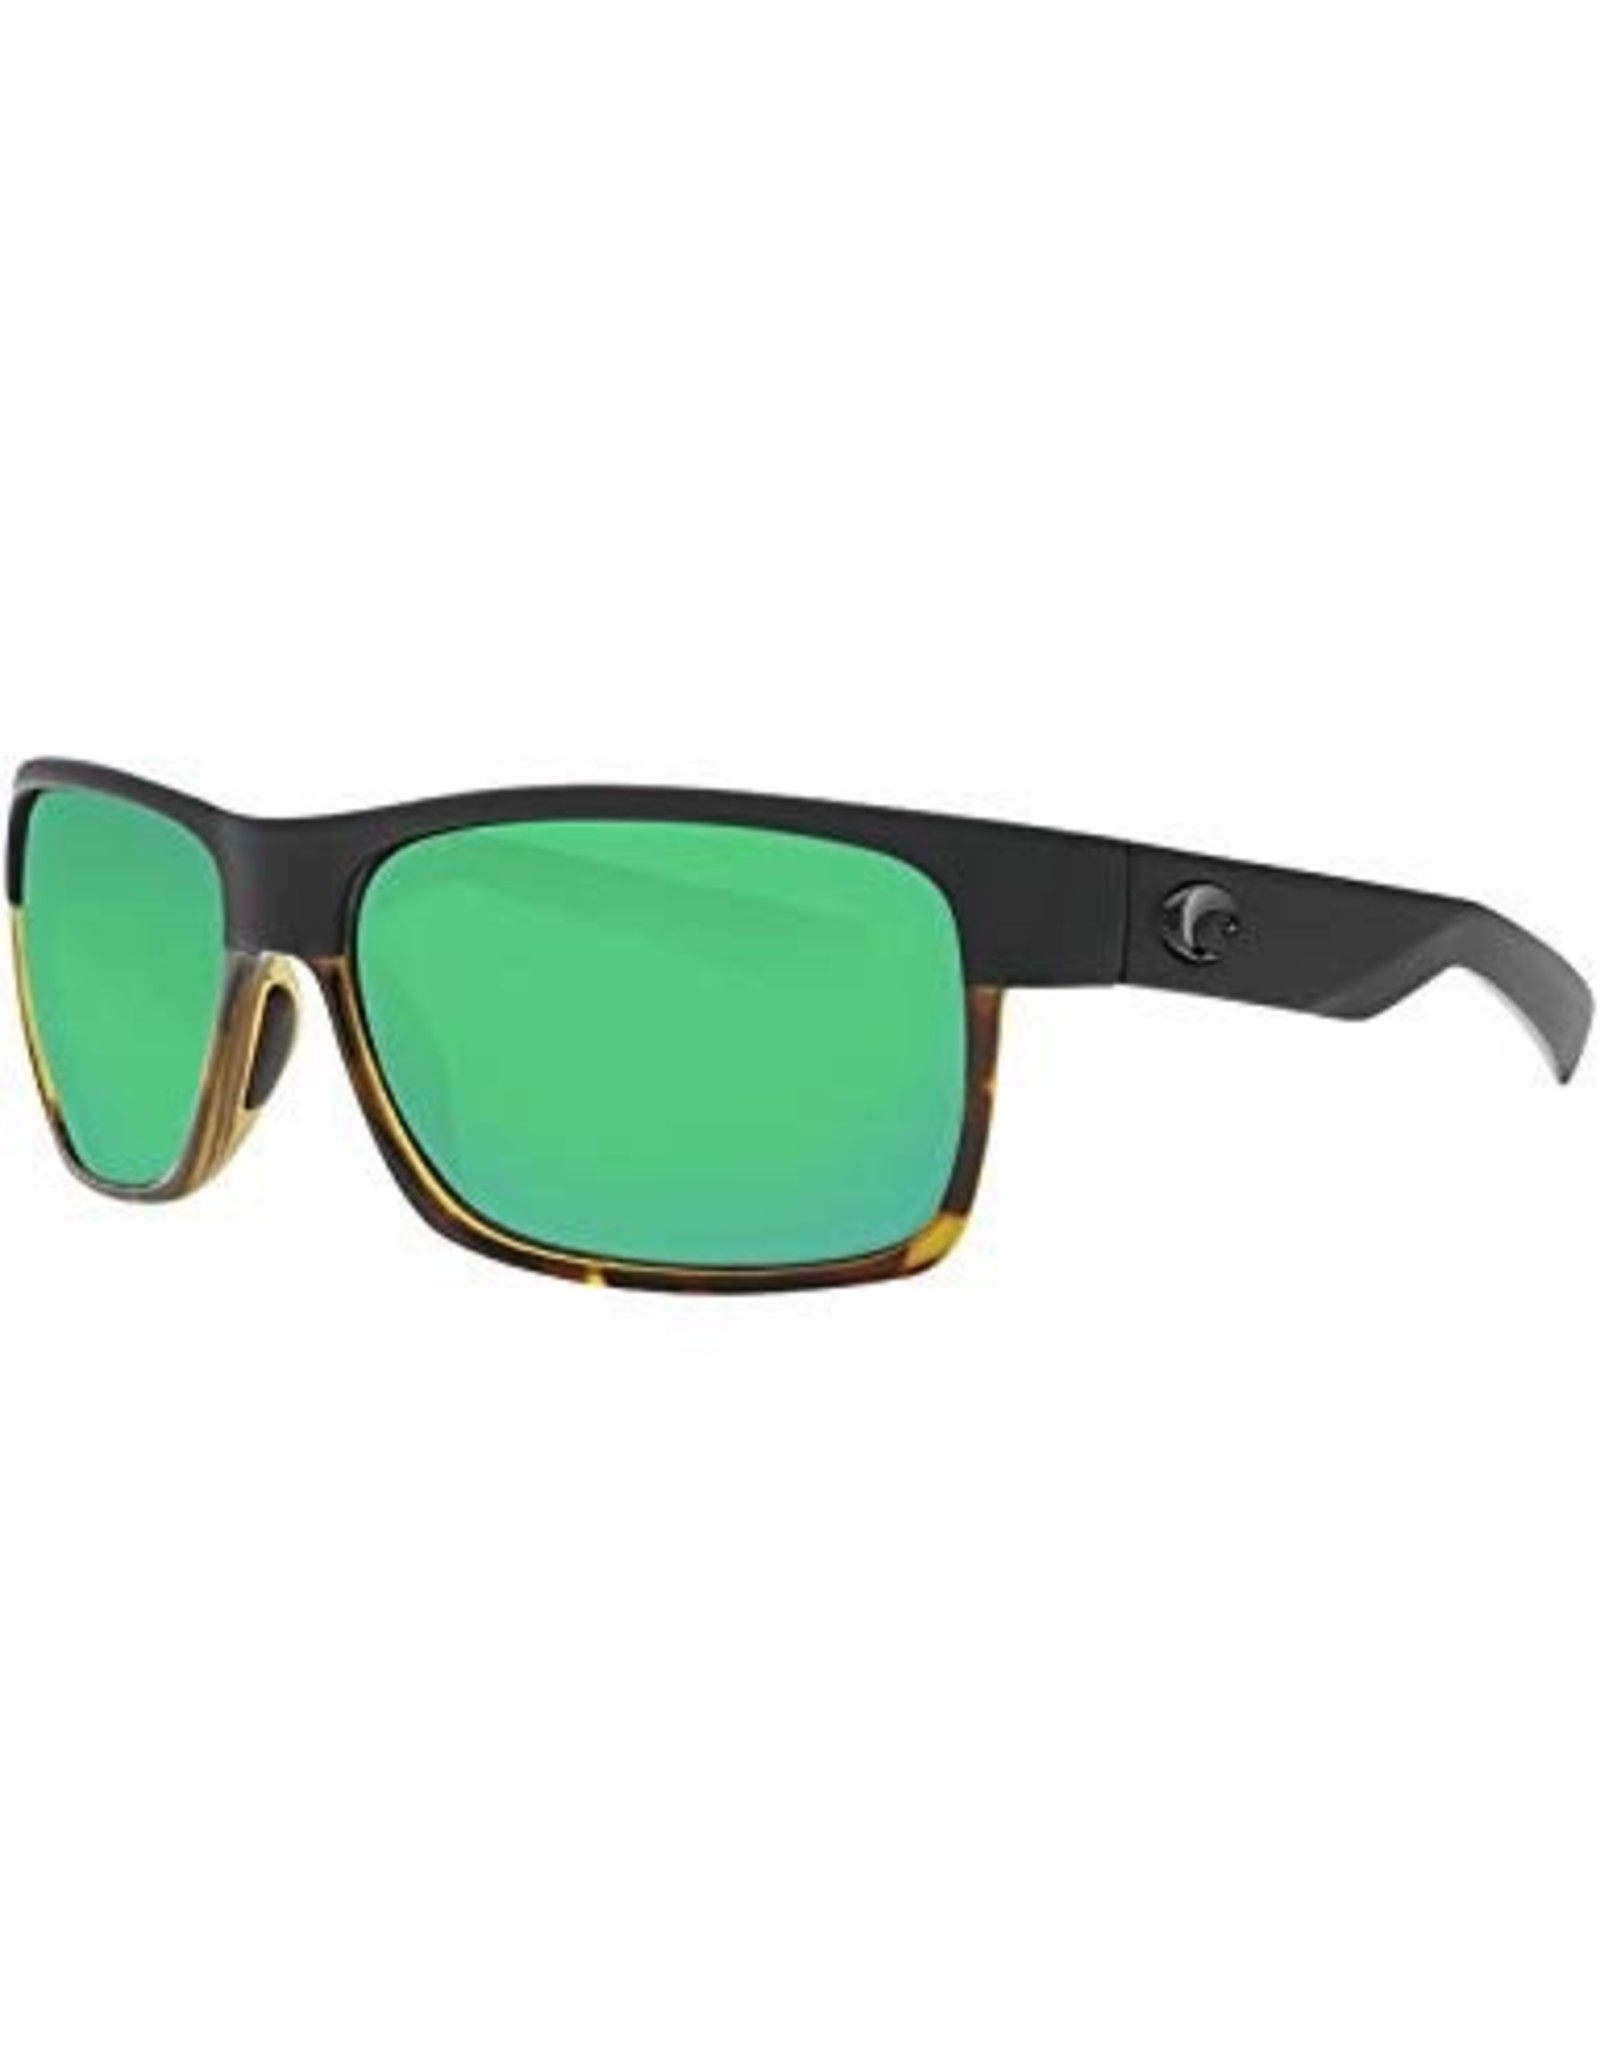 Costa Del Mar Half Moon Black Shiny Tortoise/Green Mirror